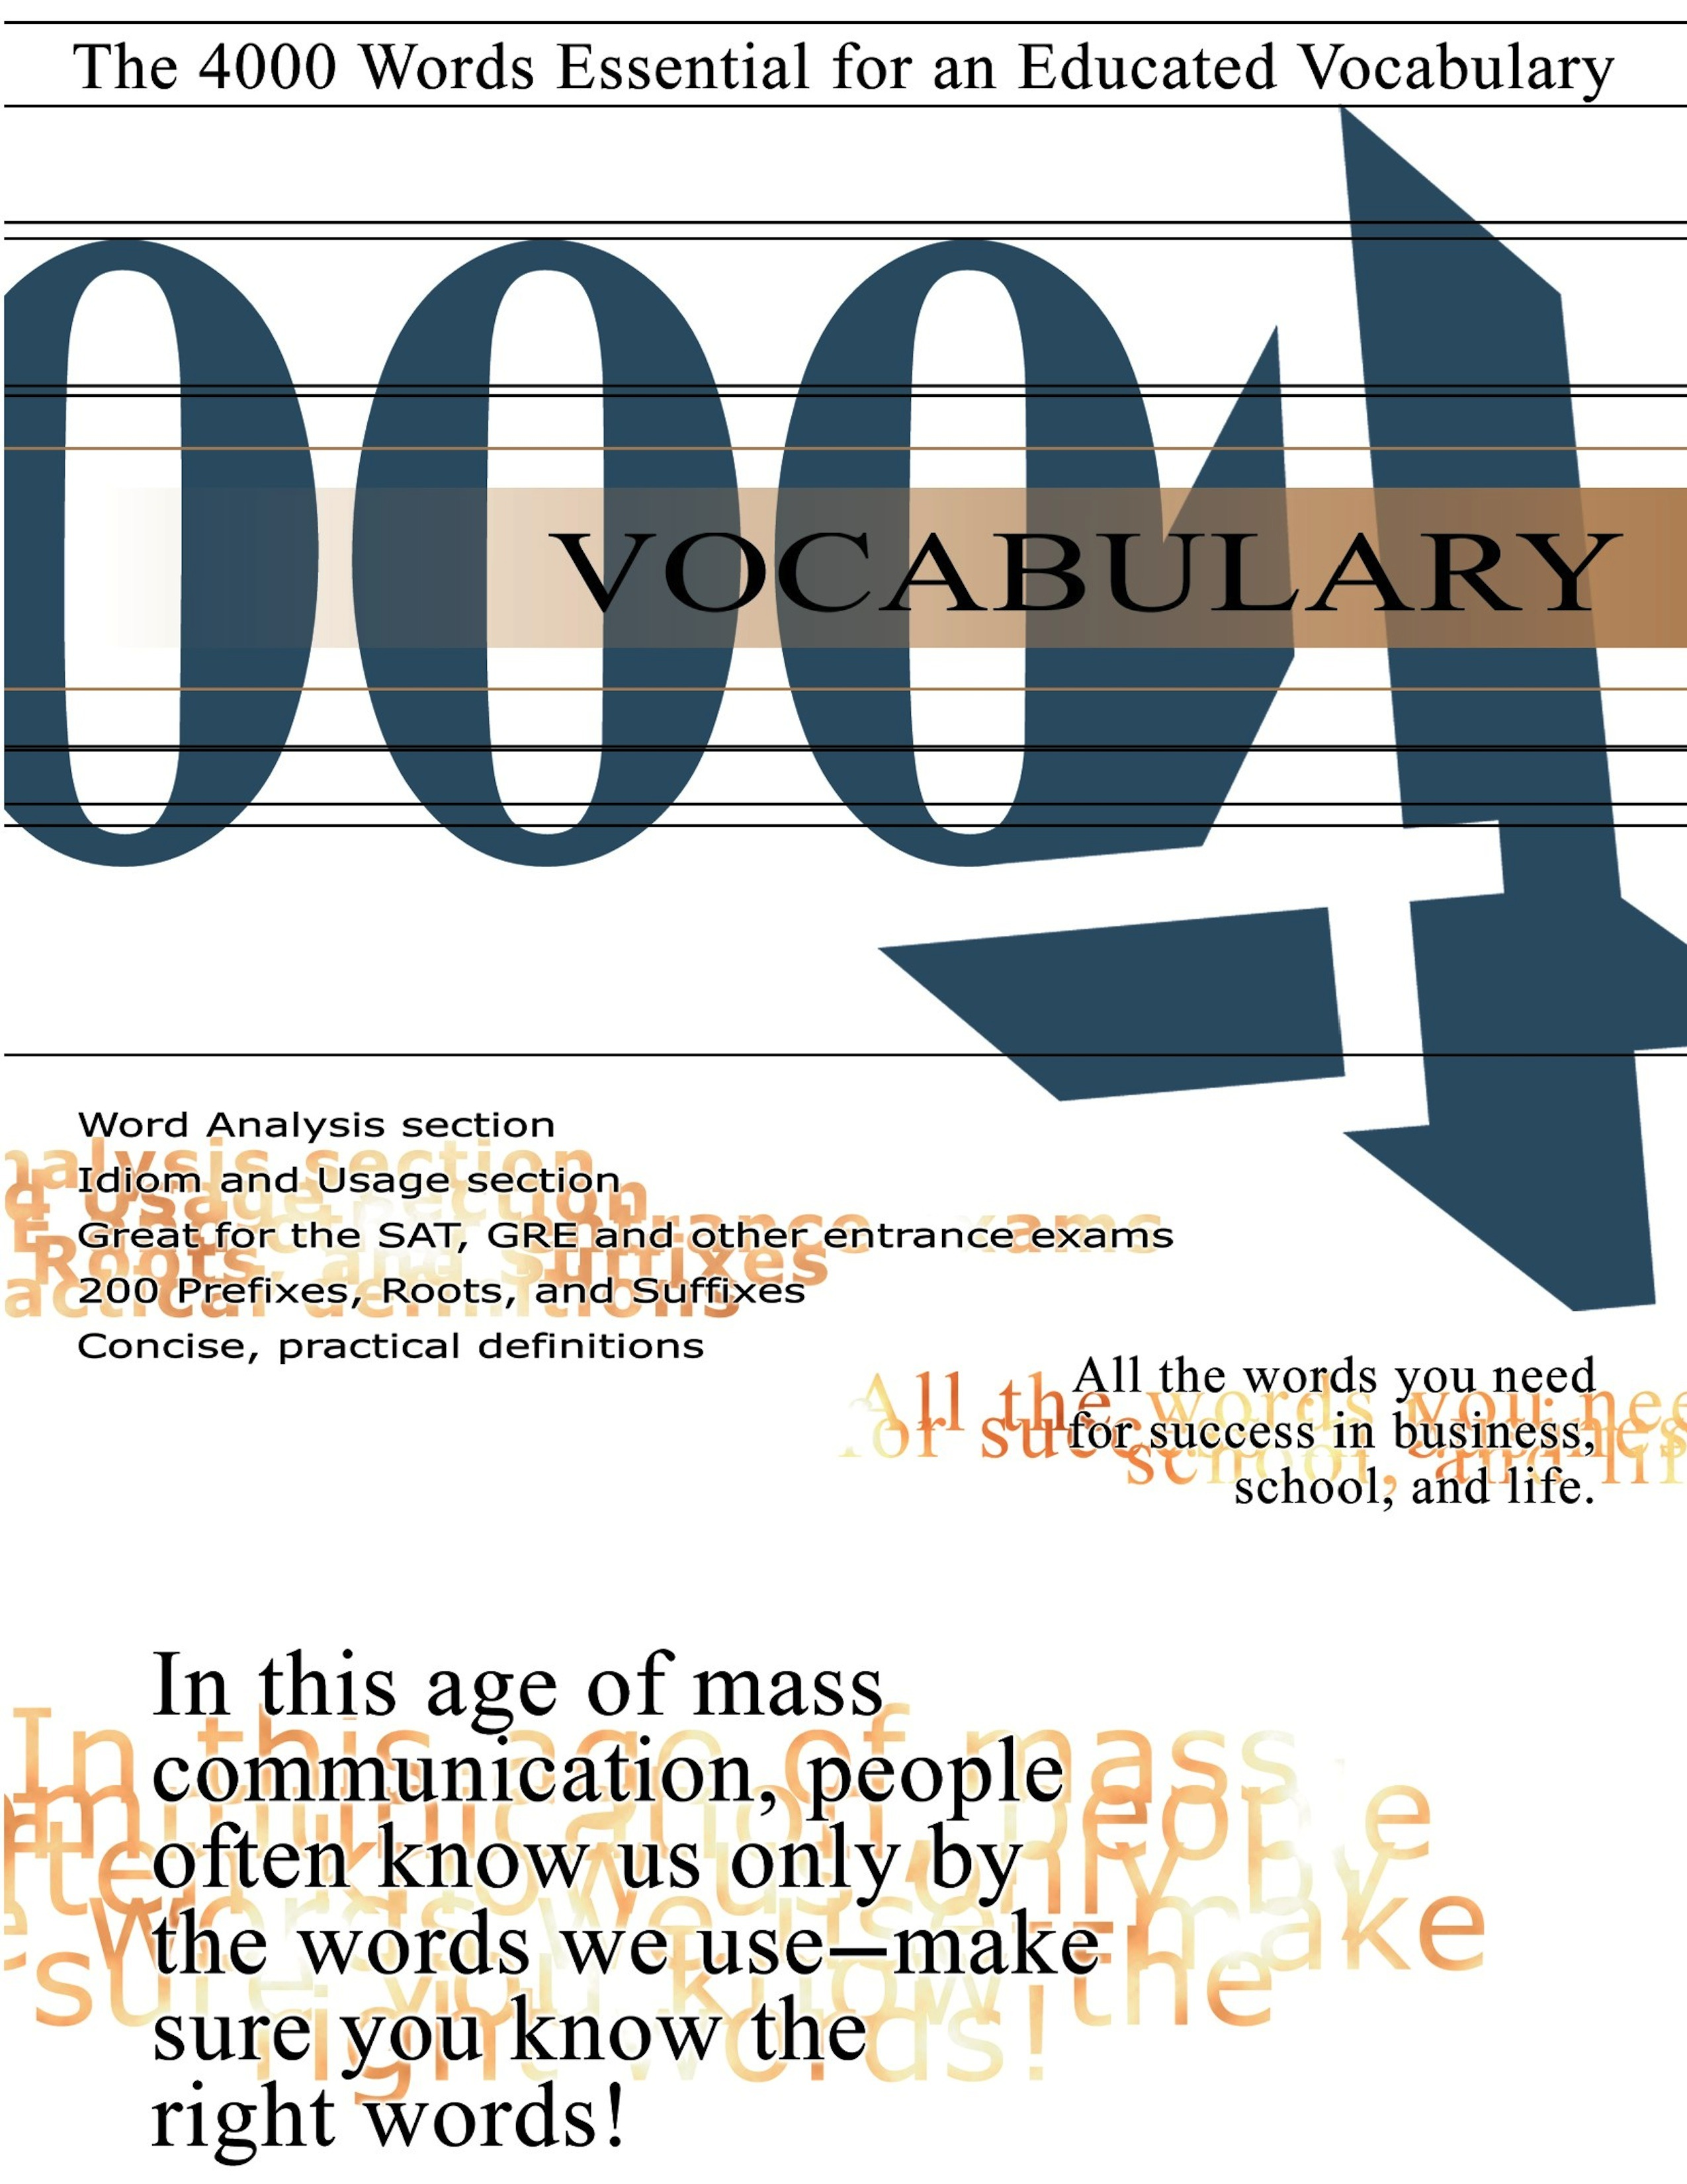 Vocabulary 4000: The 4000 Words Essential for an Educated Vocabulary